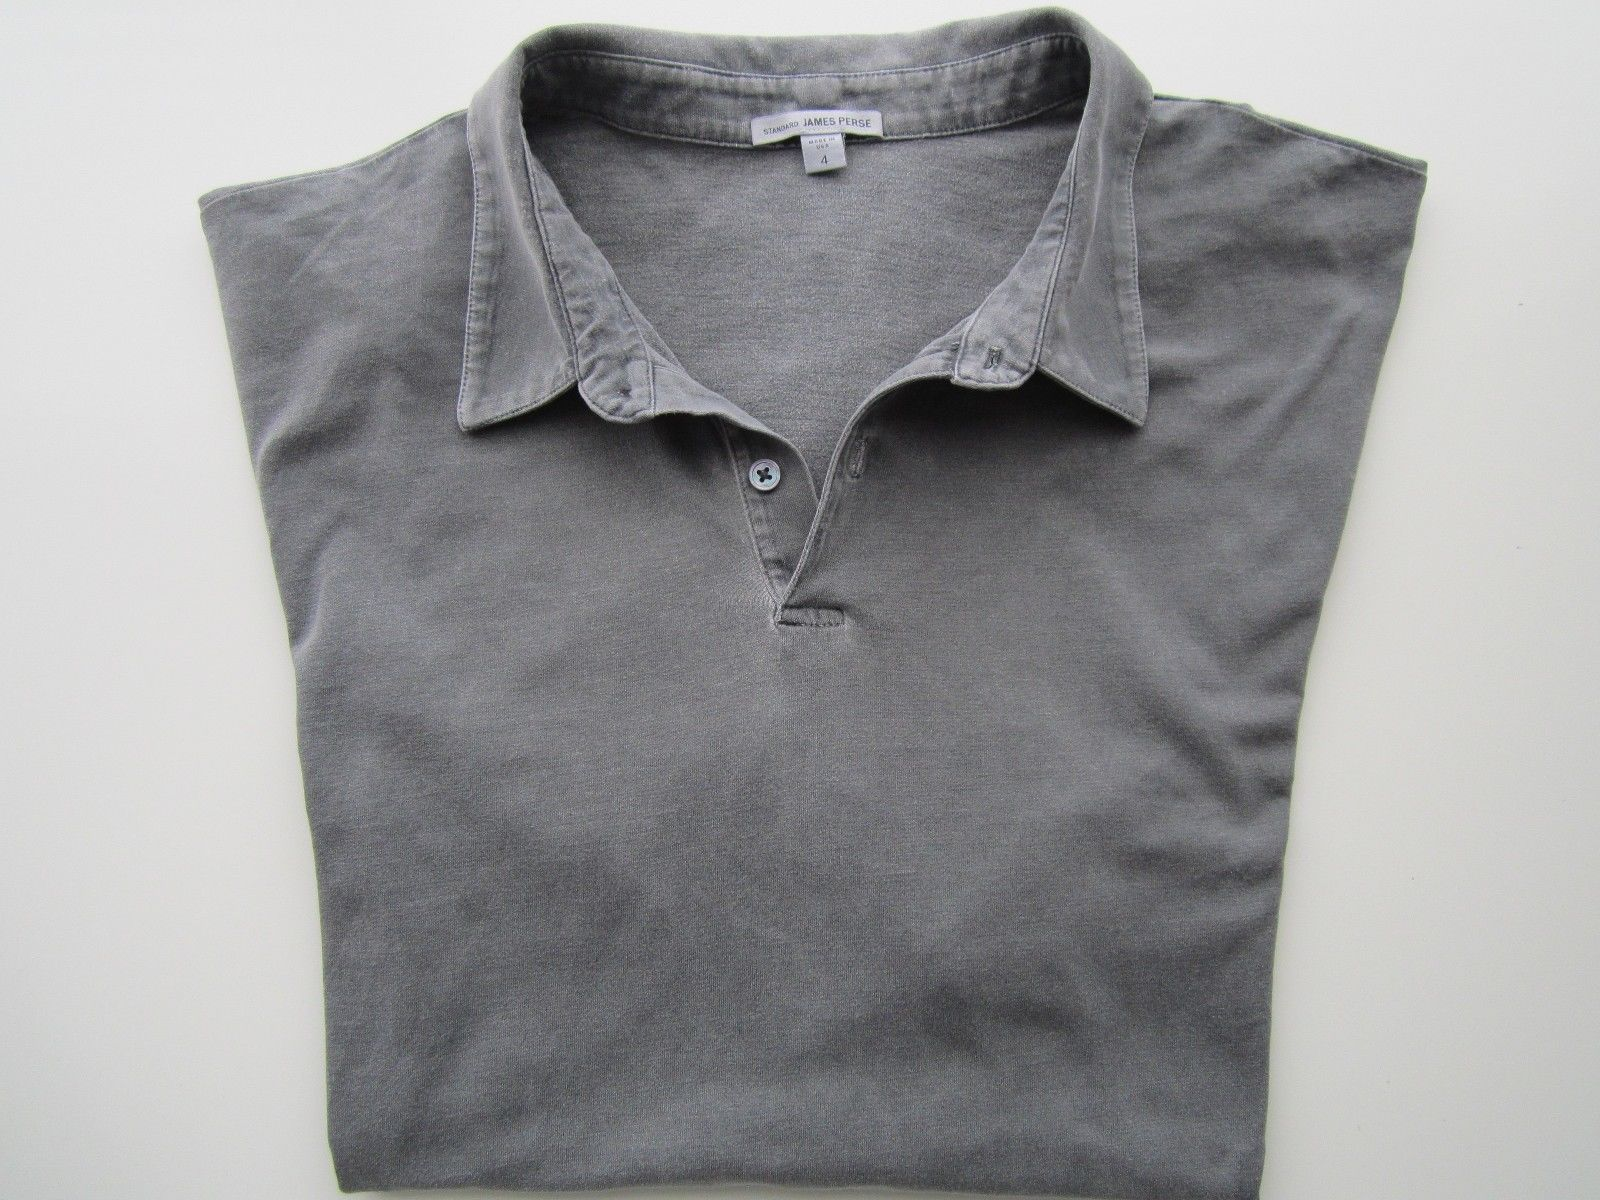 8486f66a667 S l1600. S l1600. Previous. James Perse Standard Solid Short Sleeve Men s  Polo T-Shirt ...